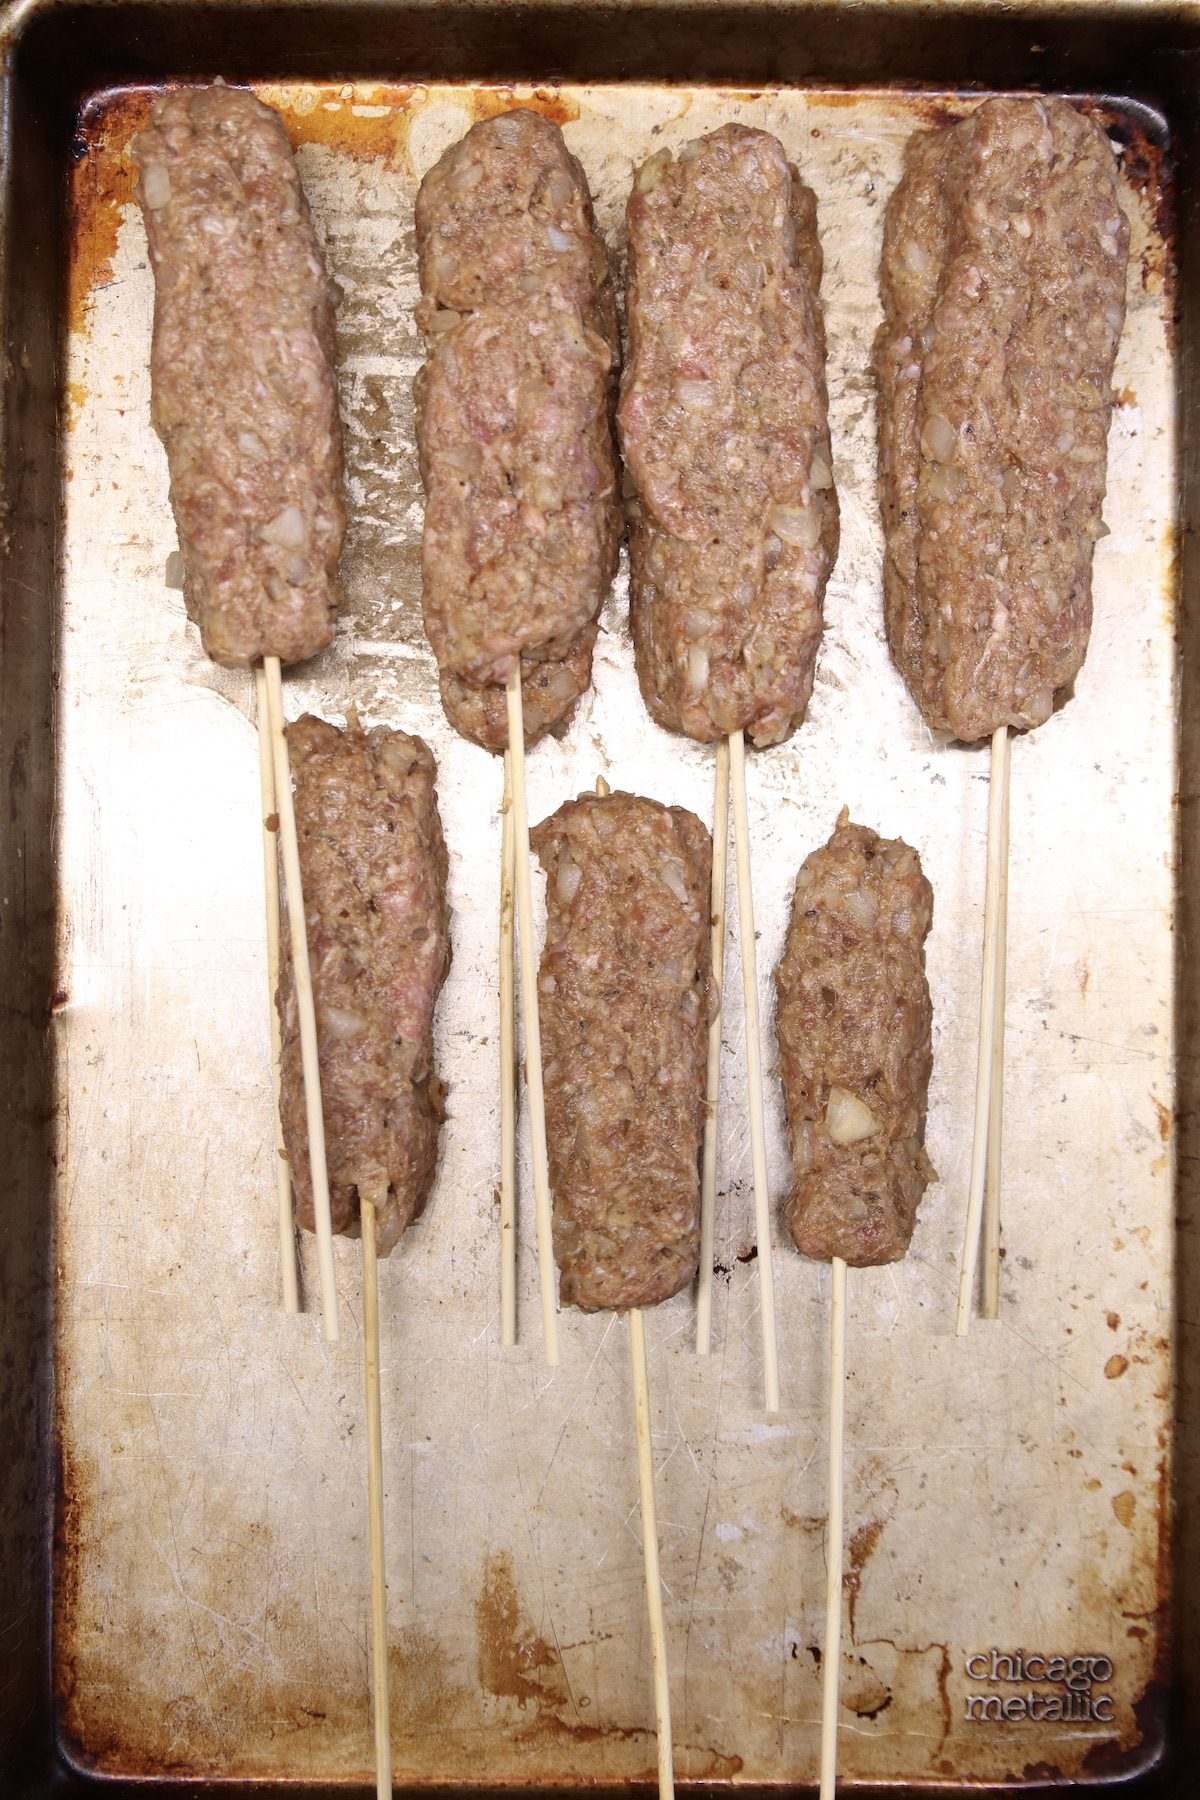 ground beef kabobs with wooden skewers ready to cook on a baking sheet